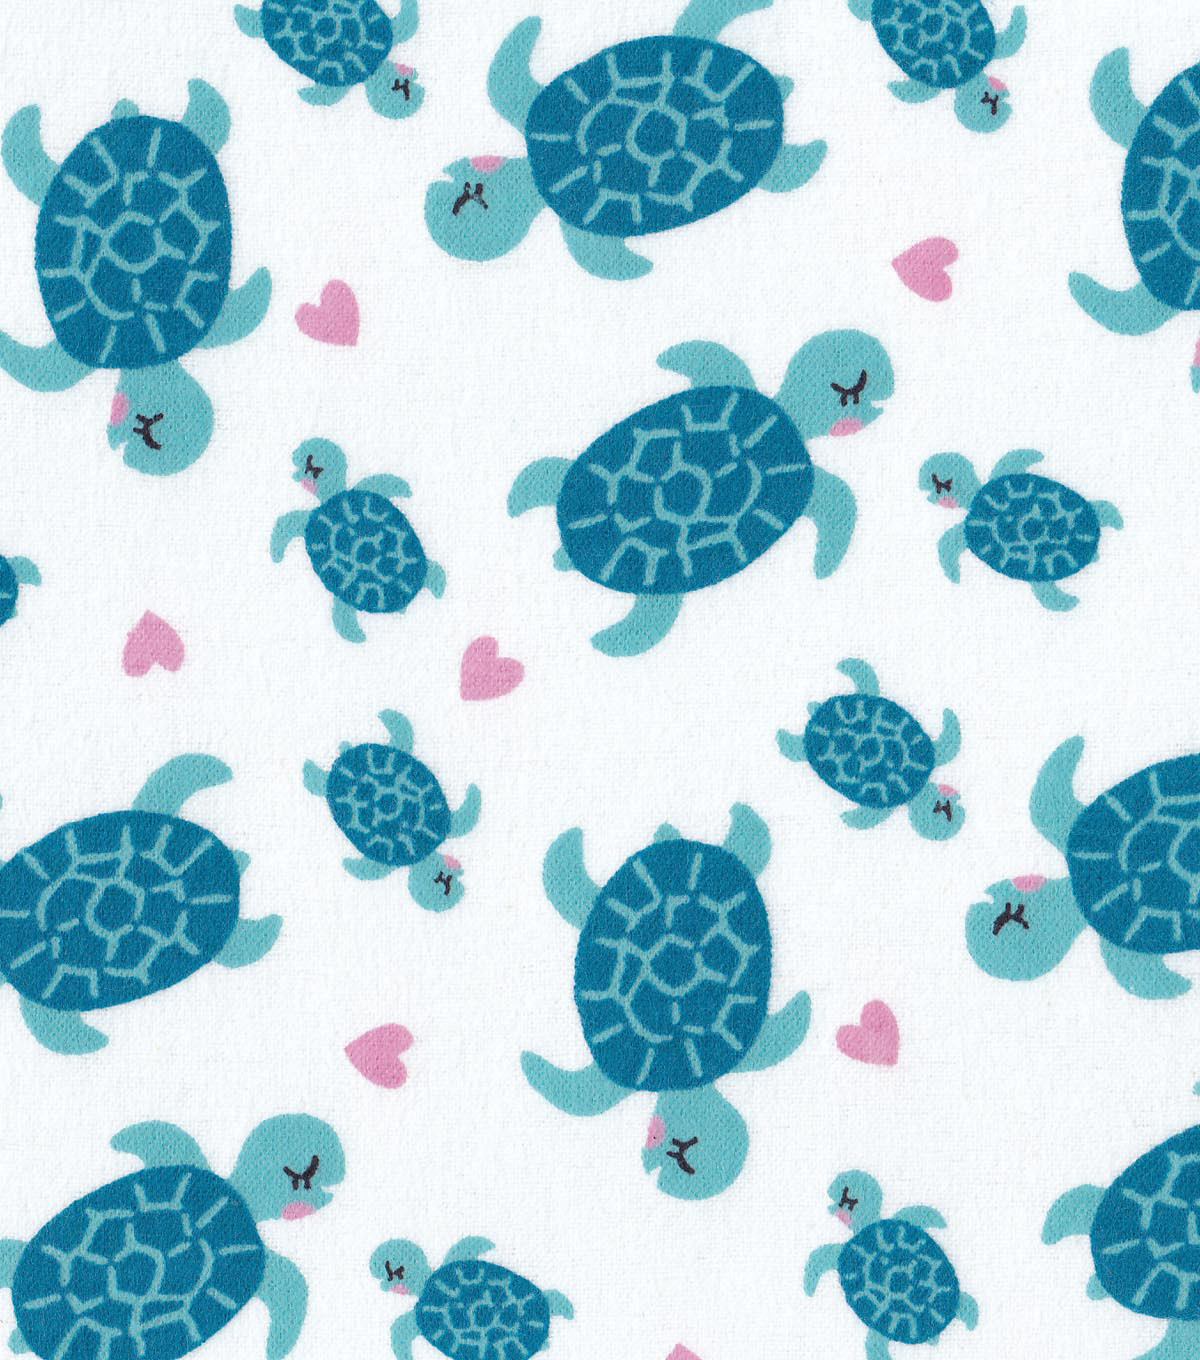 Snuggle Flannel Fabric -Mermaid Turtles